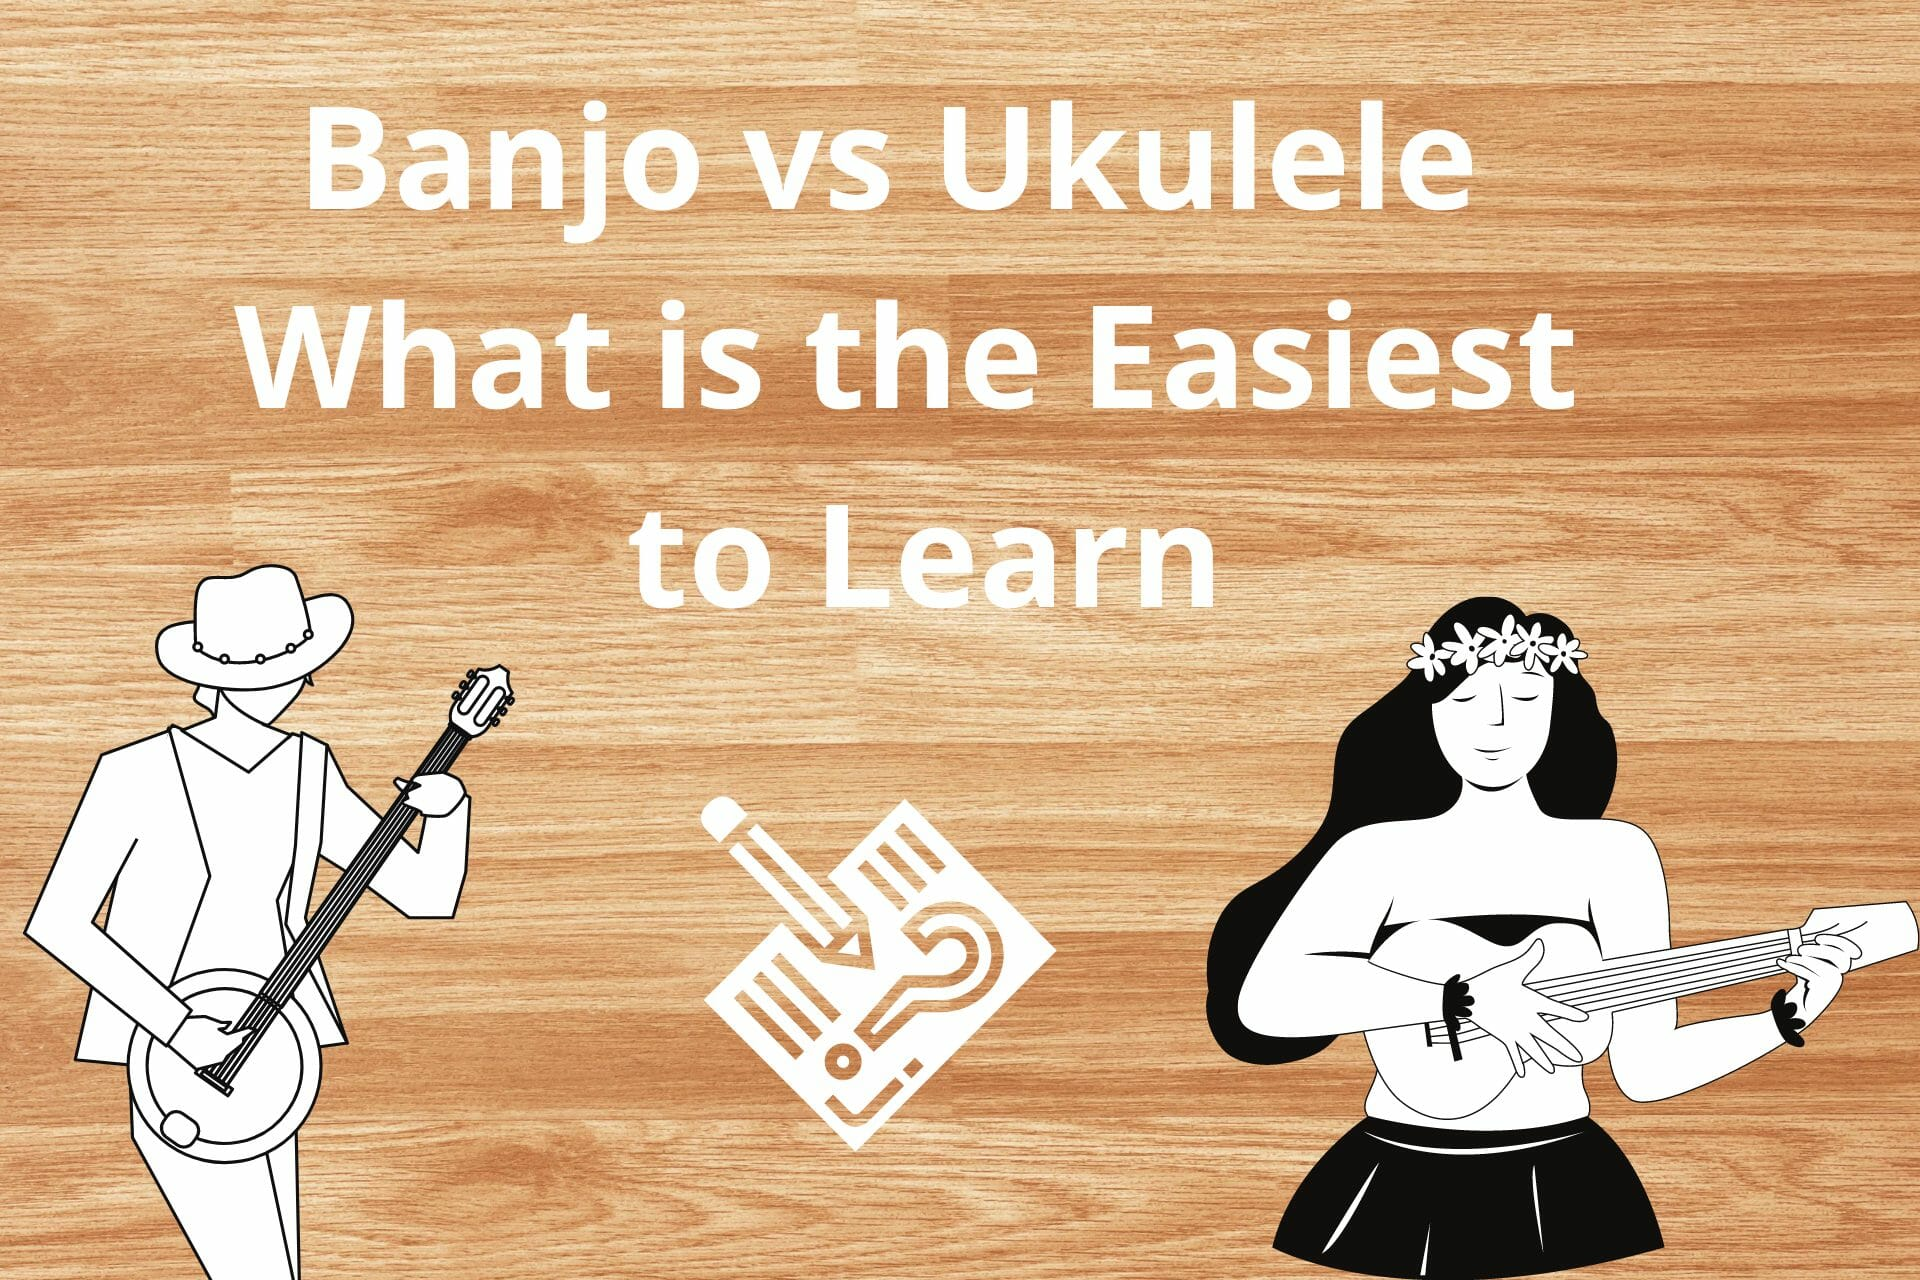 Banjo vs Ukulele | What is the Easiest to Learn?